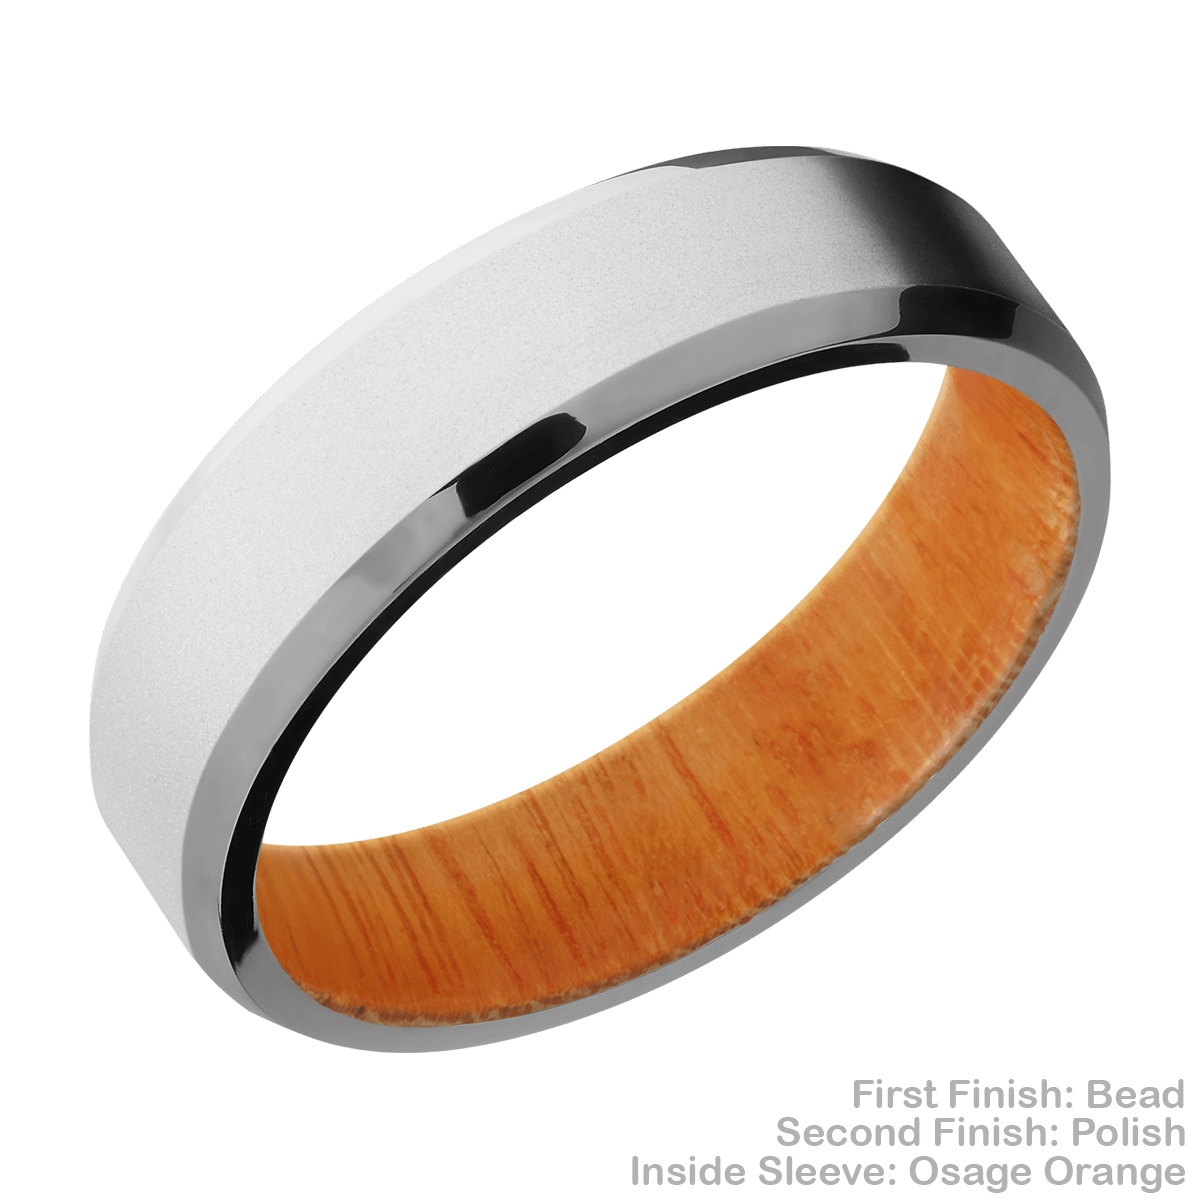 Lashbrook HWSLEEVECC6B Cobalt Chrome and Hardwood Wedding Ring or Band Alternative View 5